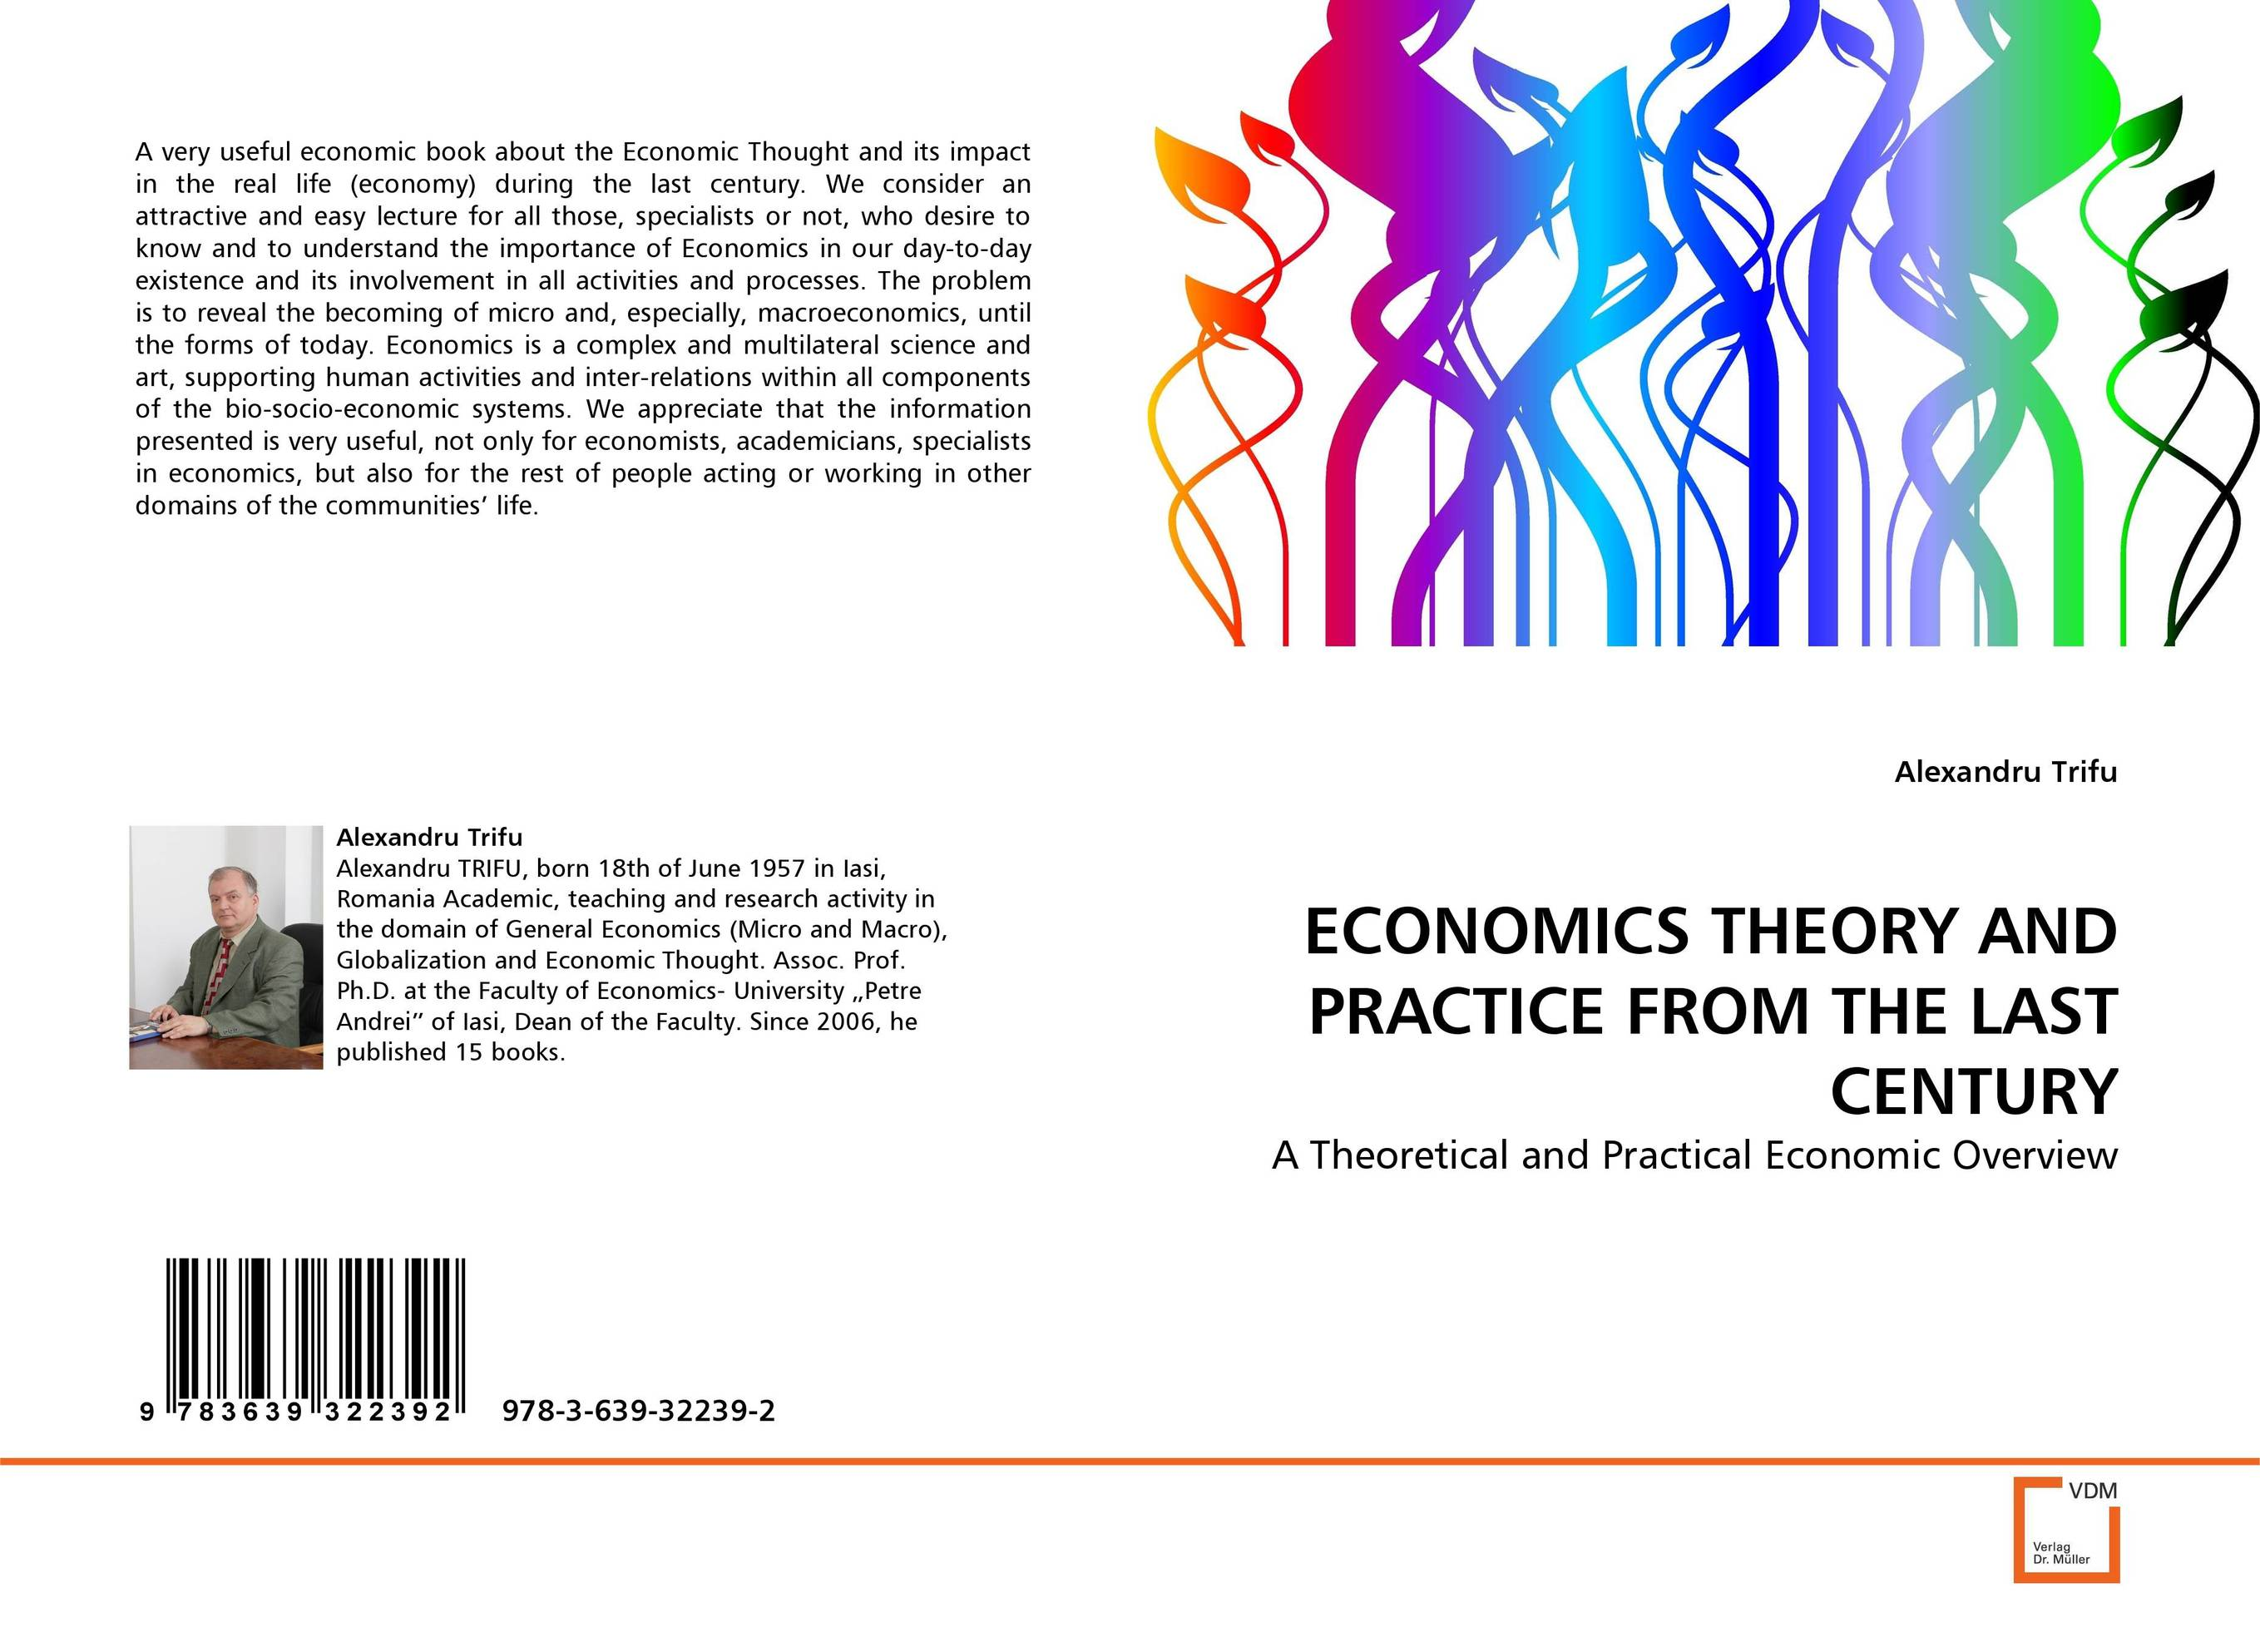 ECONOMICS THEORY AND PRACTICE FROM THE LAST CENTURY the life of forms in art